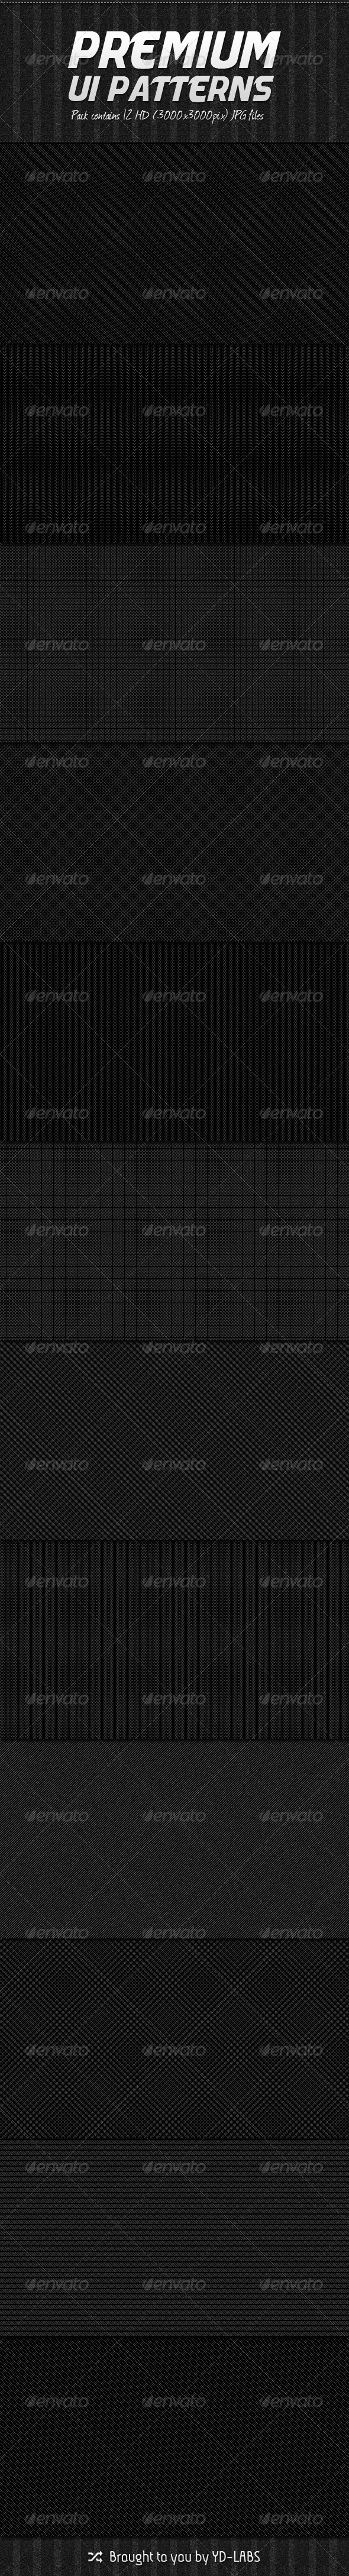 12 Premium Patterns - Patterns Backgrounds